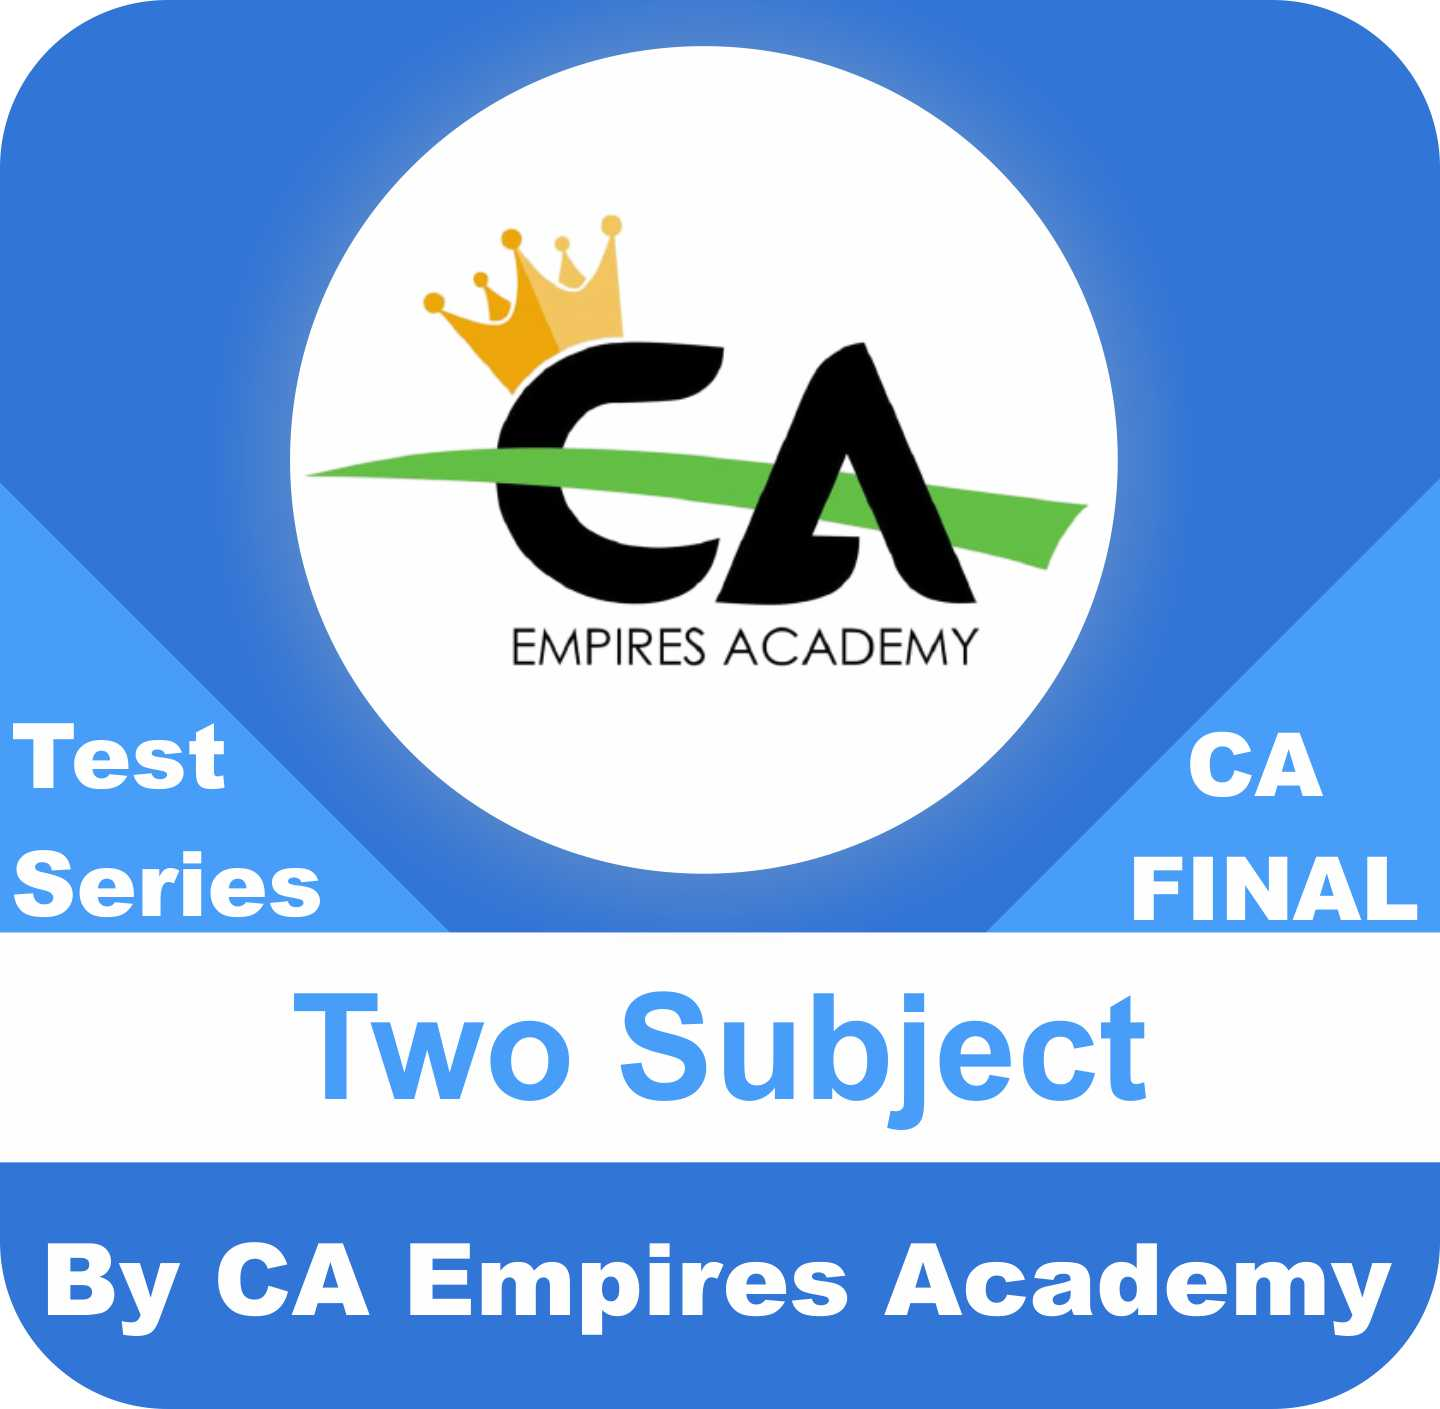 CA Final Any Two Subject Test Series in Bronze Plan by CA Empires Academy